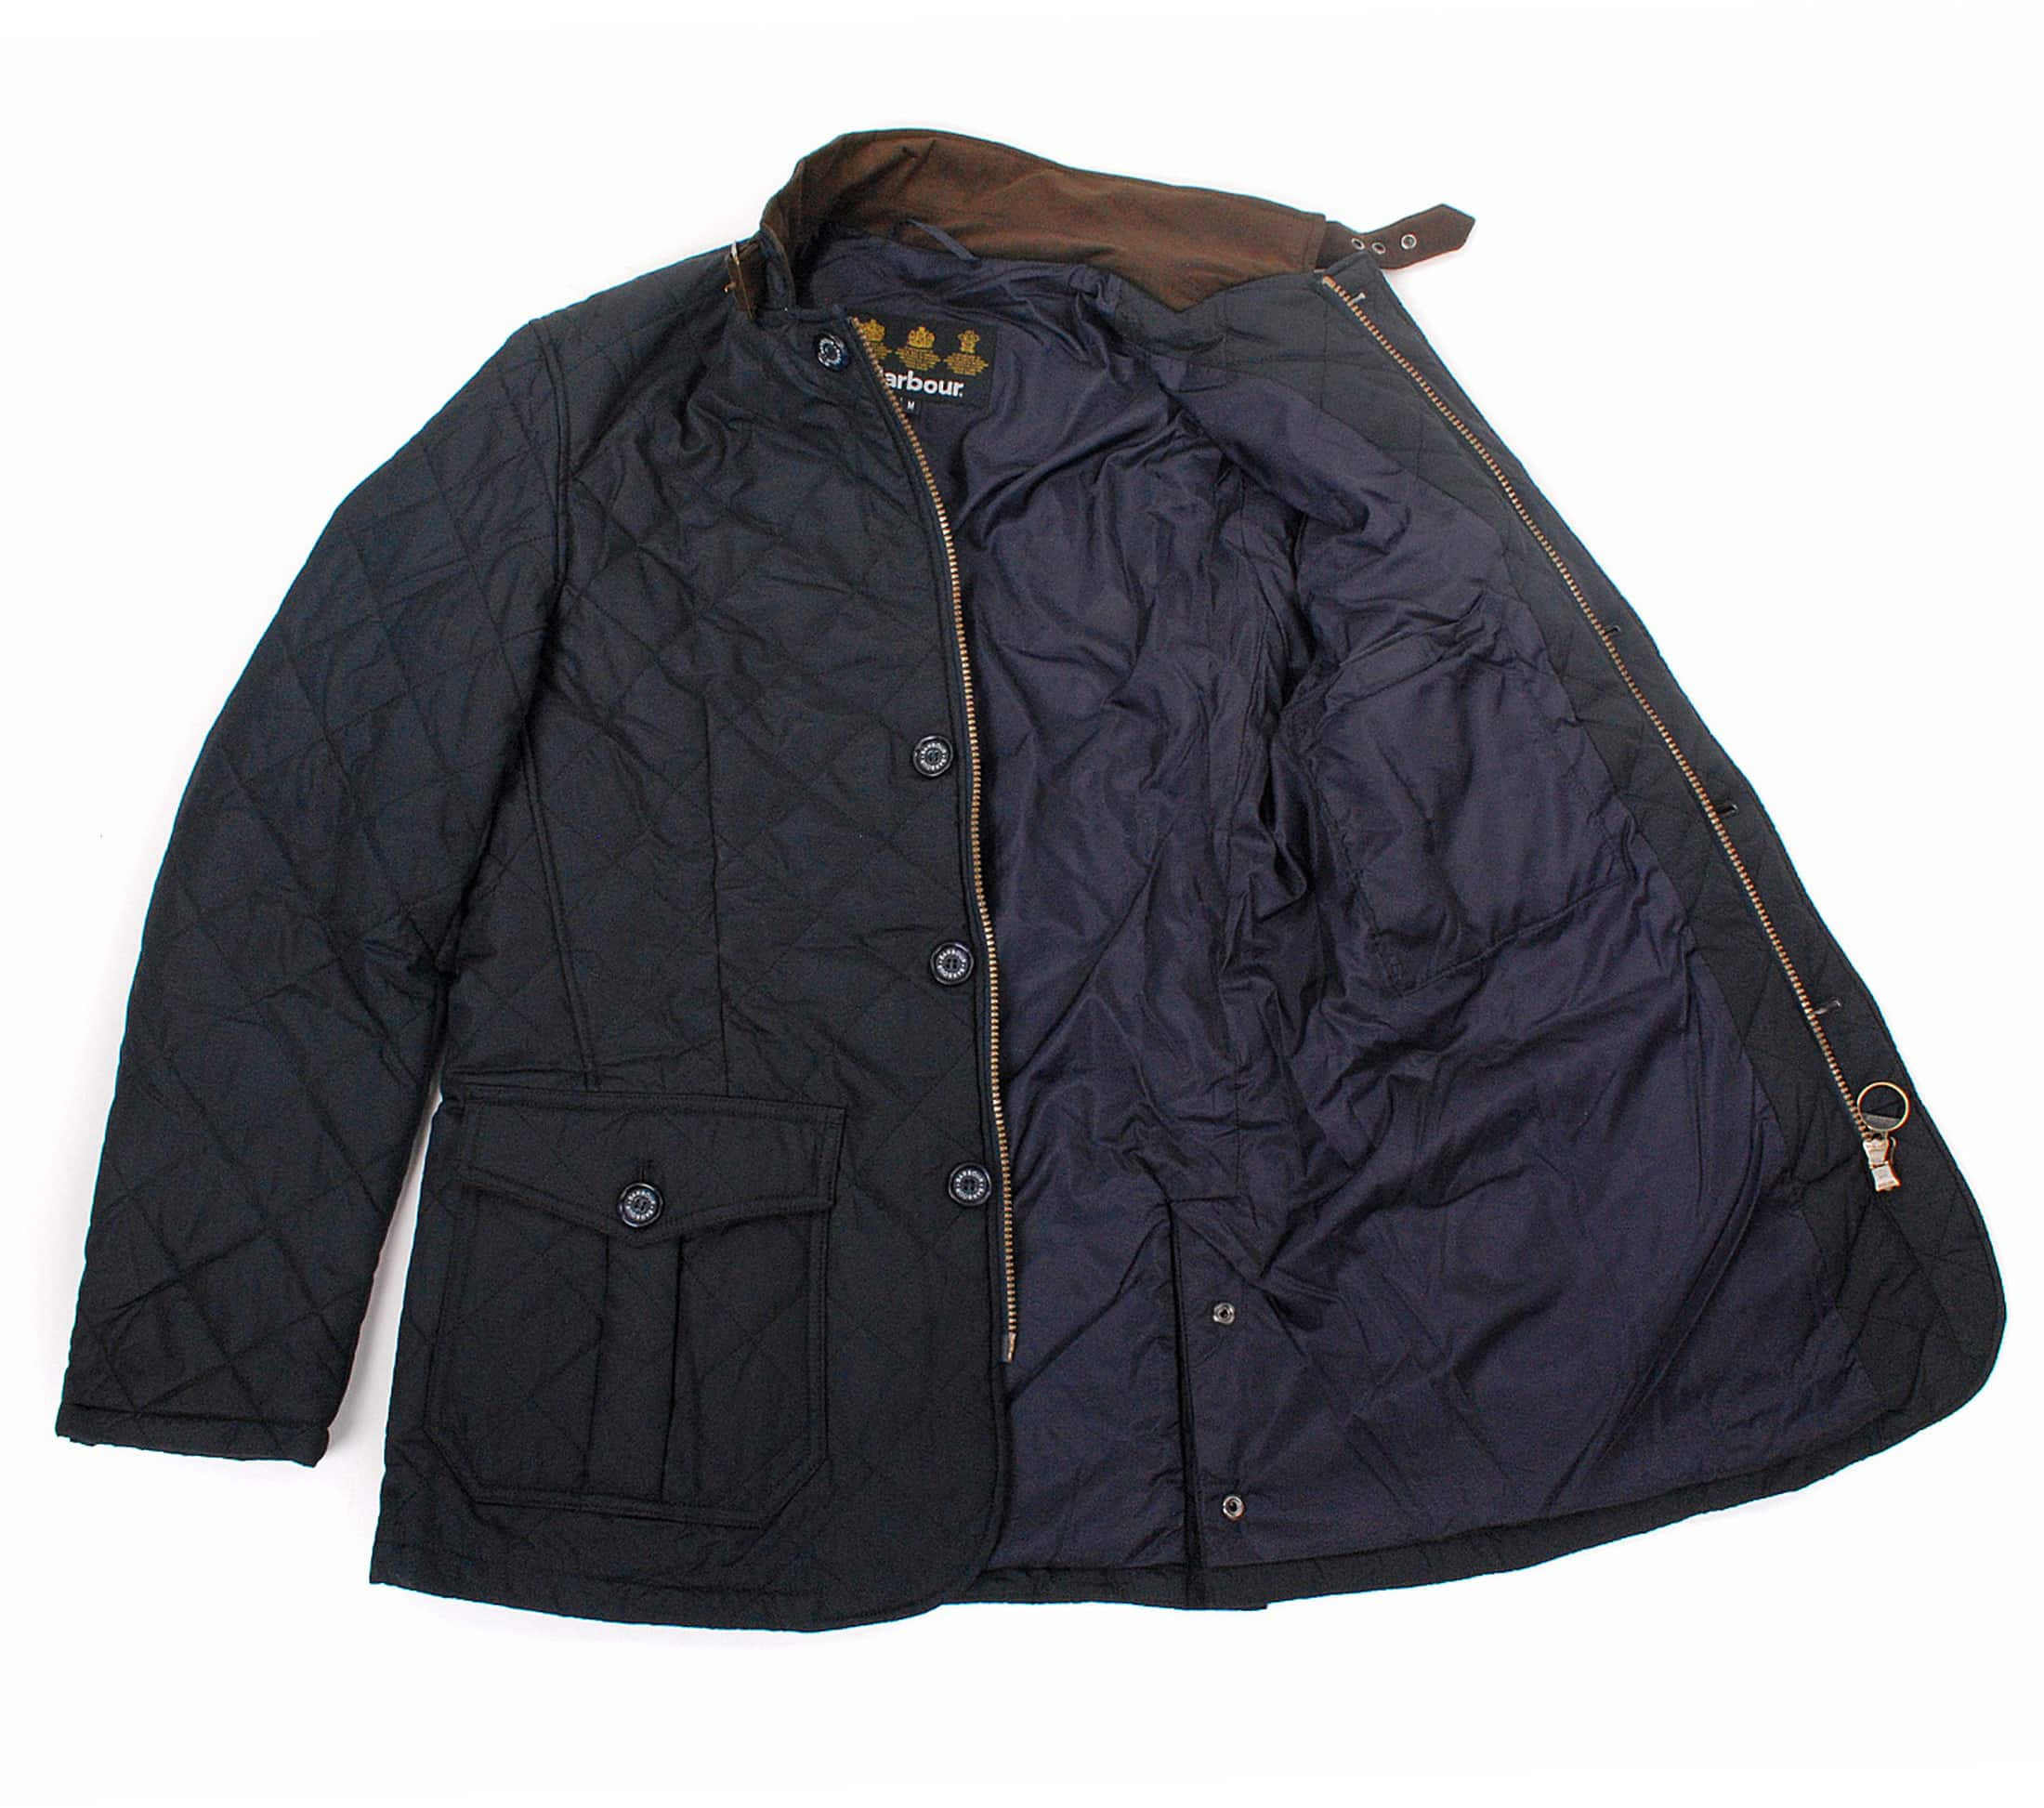 Barbour jacket quilted lutz mqu0508ny71